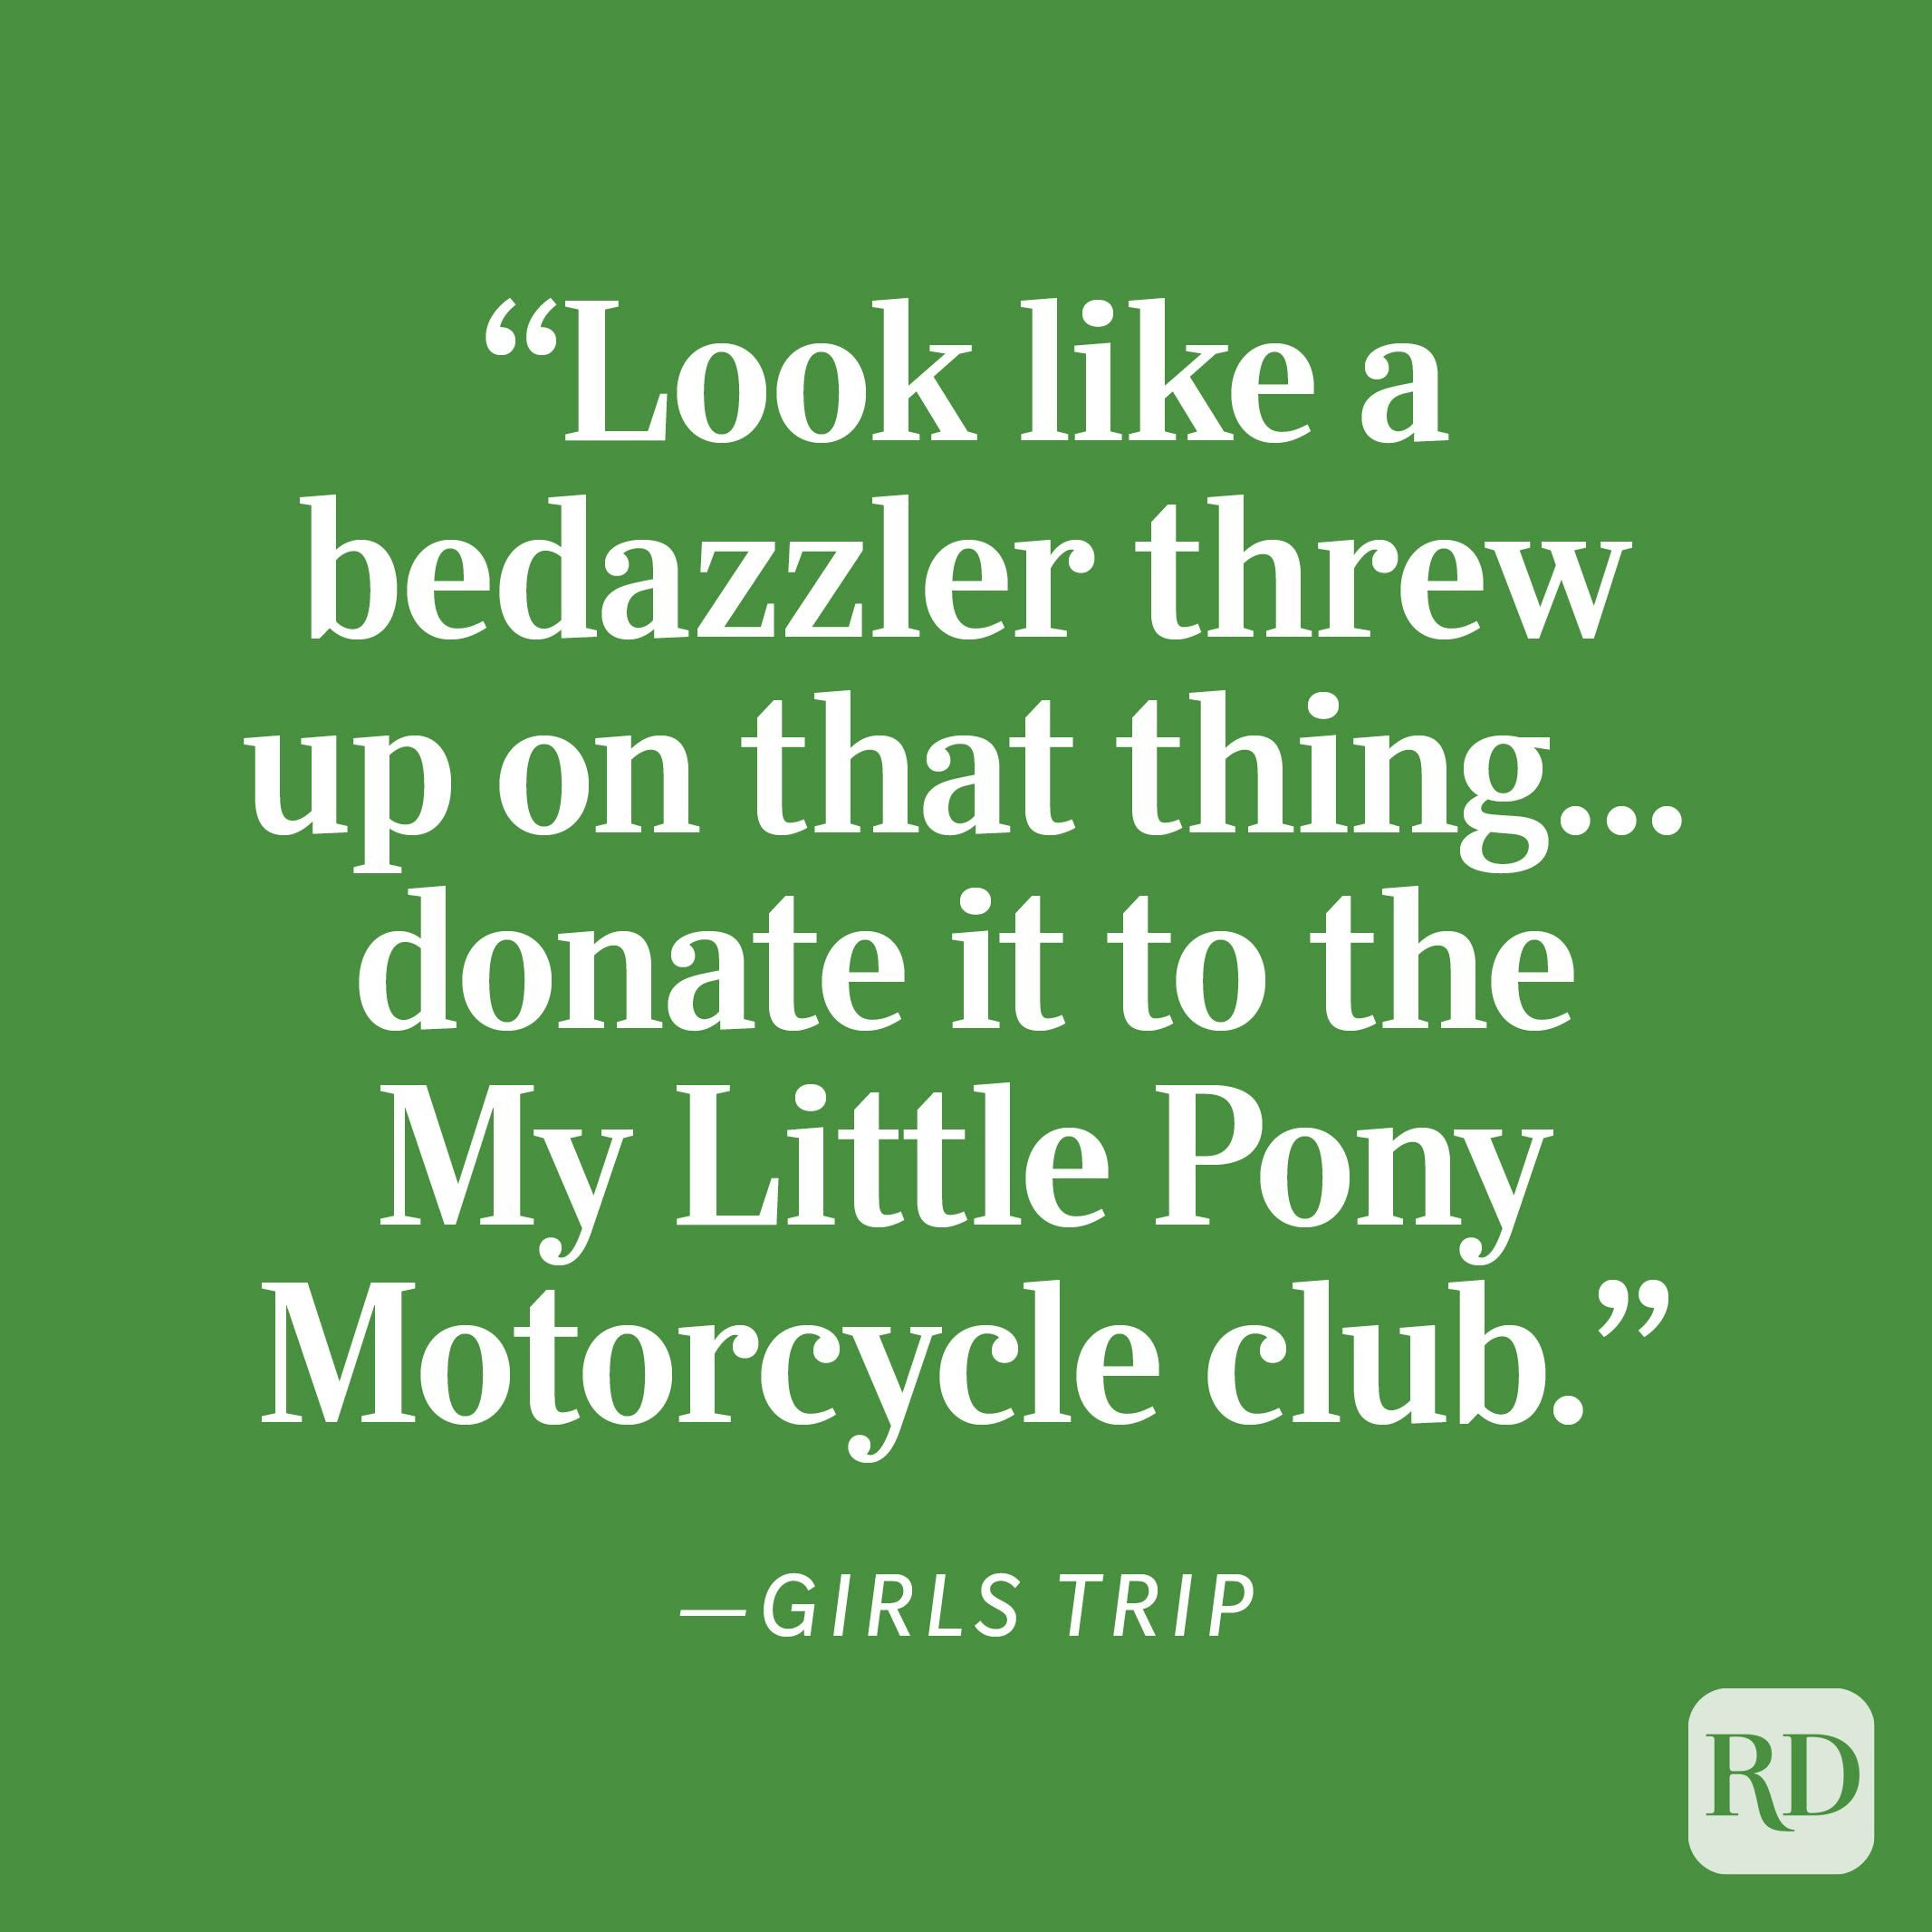 """Girls Trip """"Look like a bedazzler threw up on that thing . . . donate it to the My Little Pony Motorcycle club."""""""